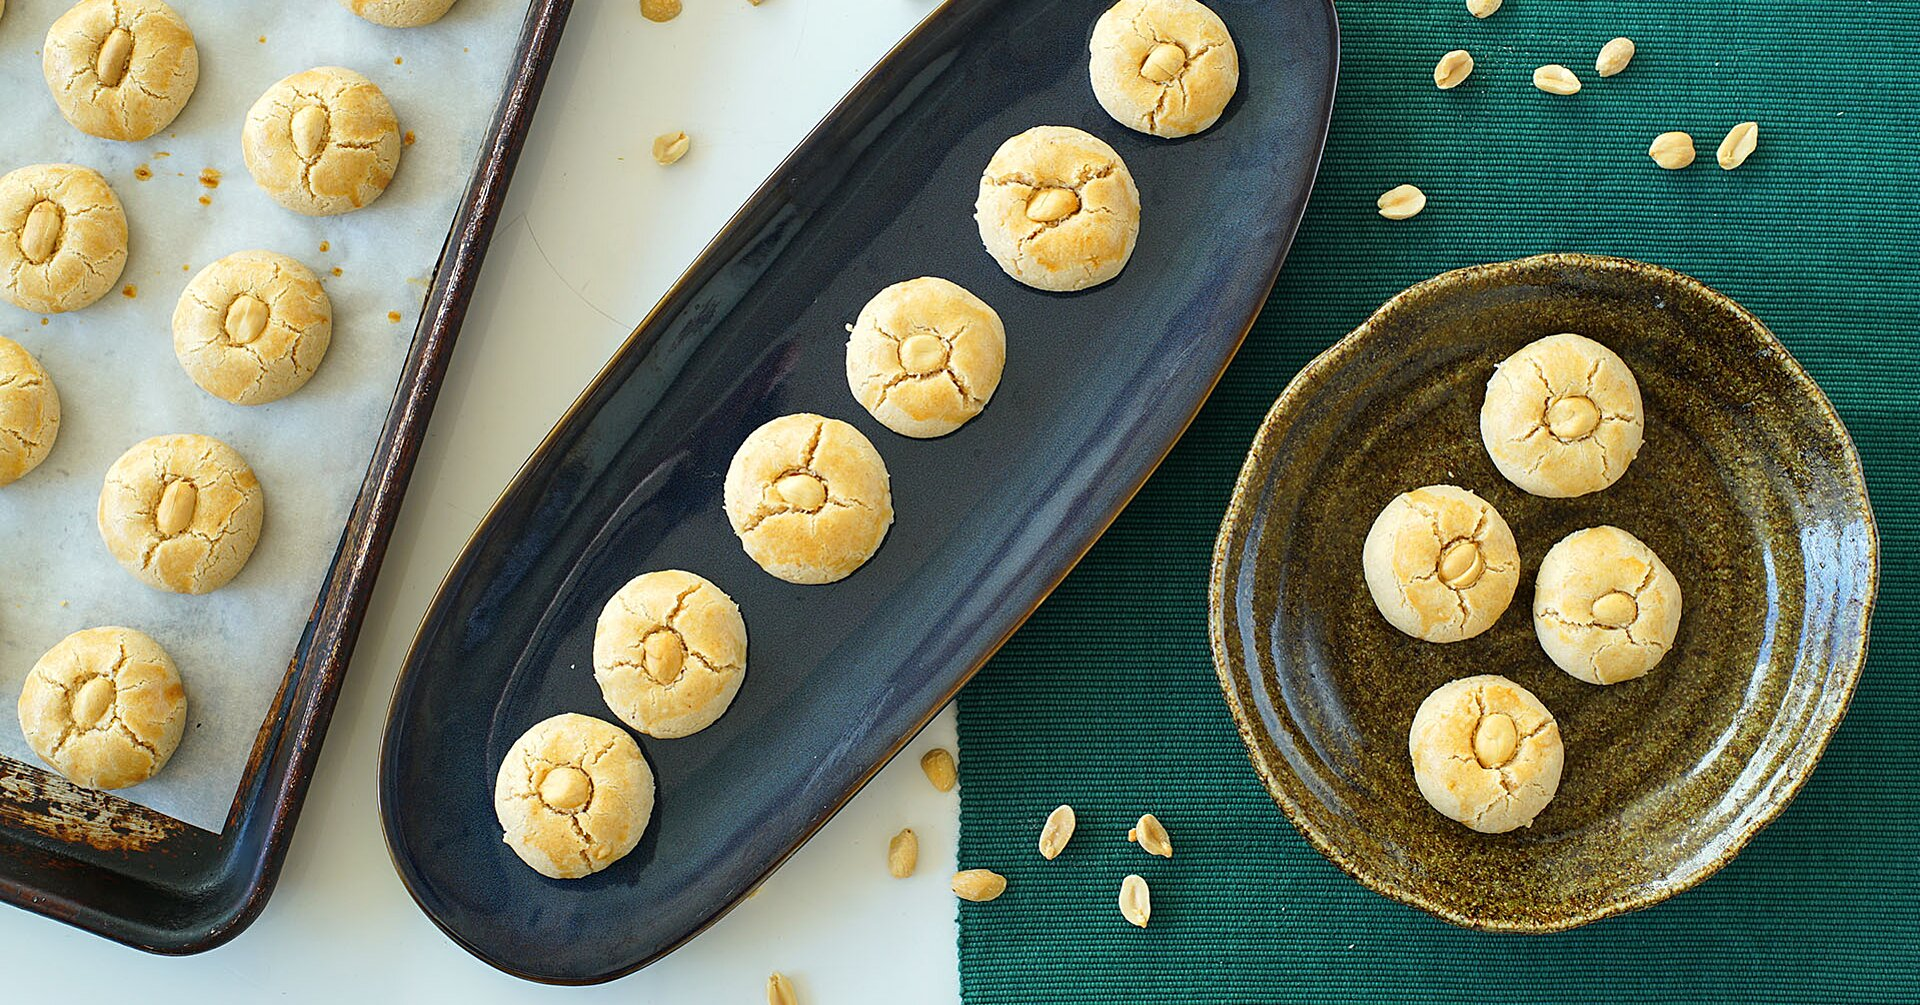 Recipes to Celebrate Chinese New Year